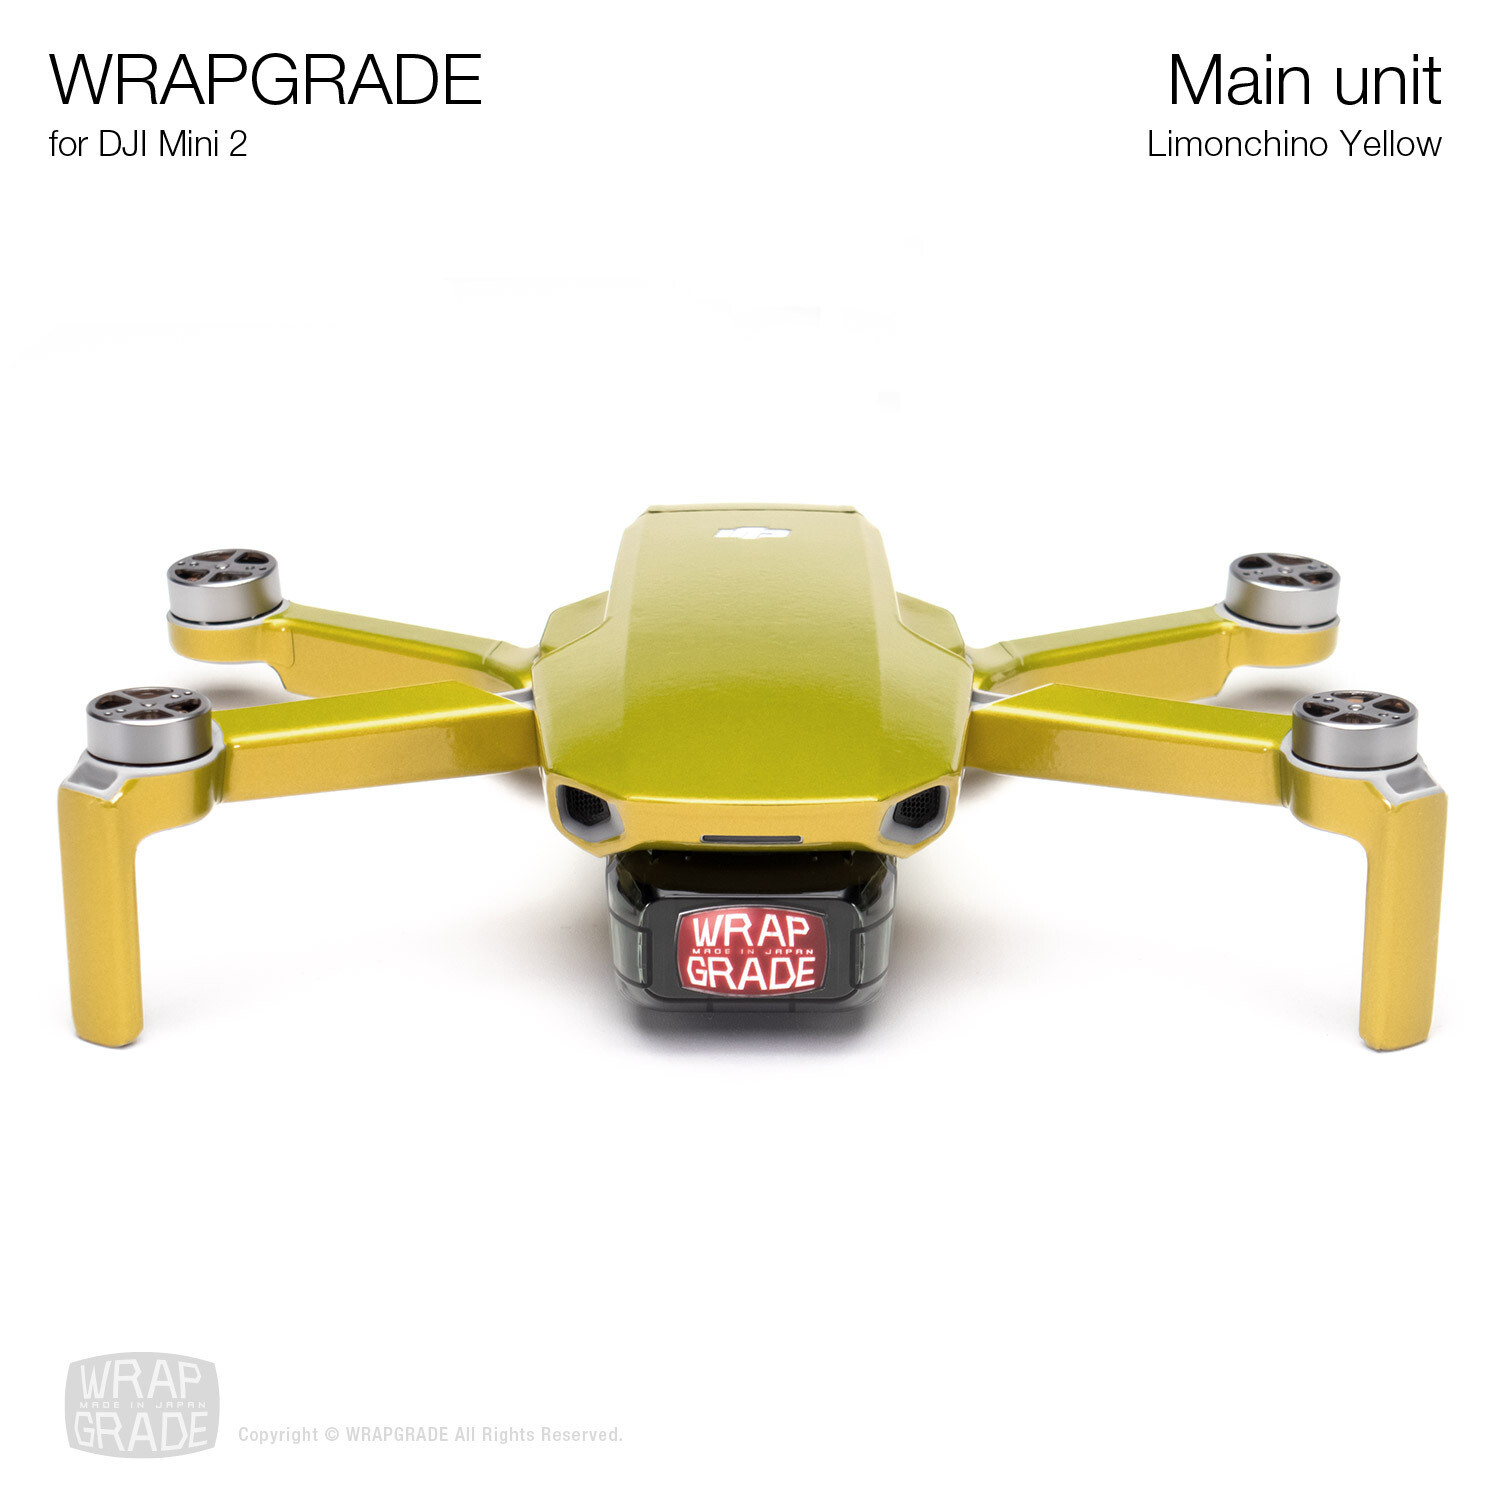 Wrapgrade Poly Skin for DJI Mini 2 | Main Unit (LIMONCINO YELLOW)